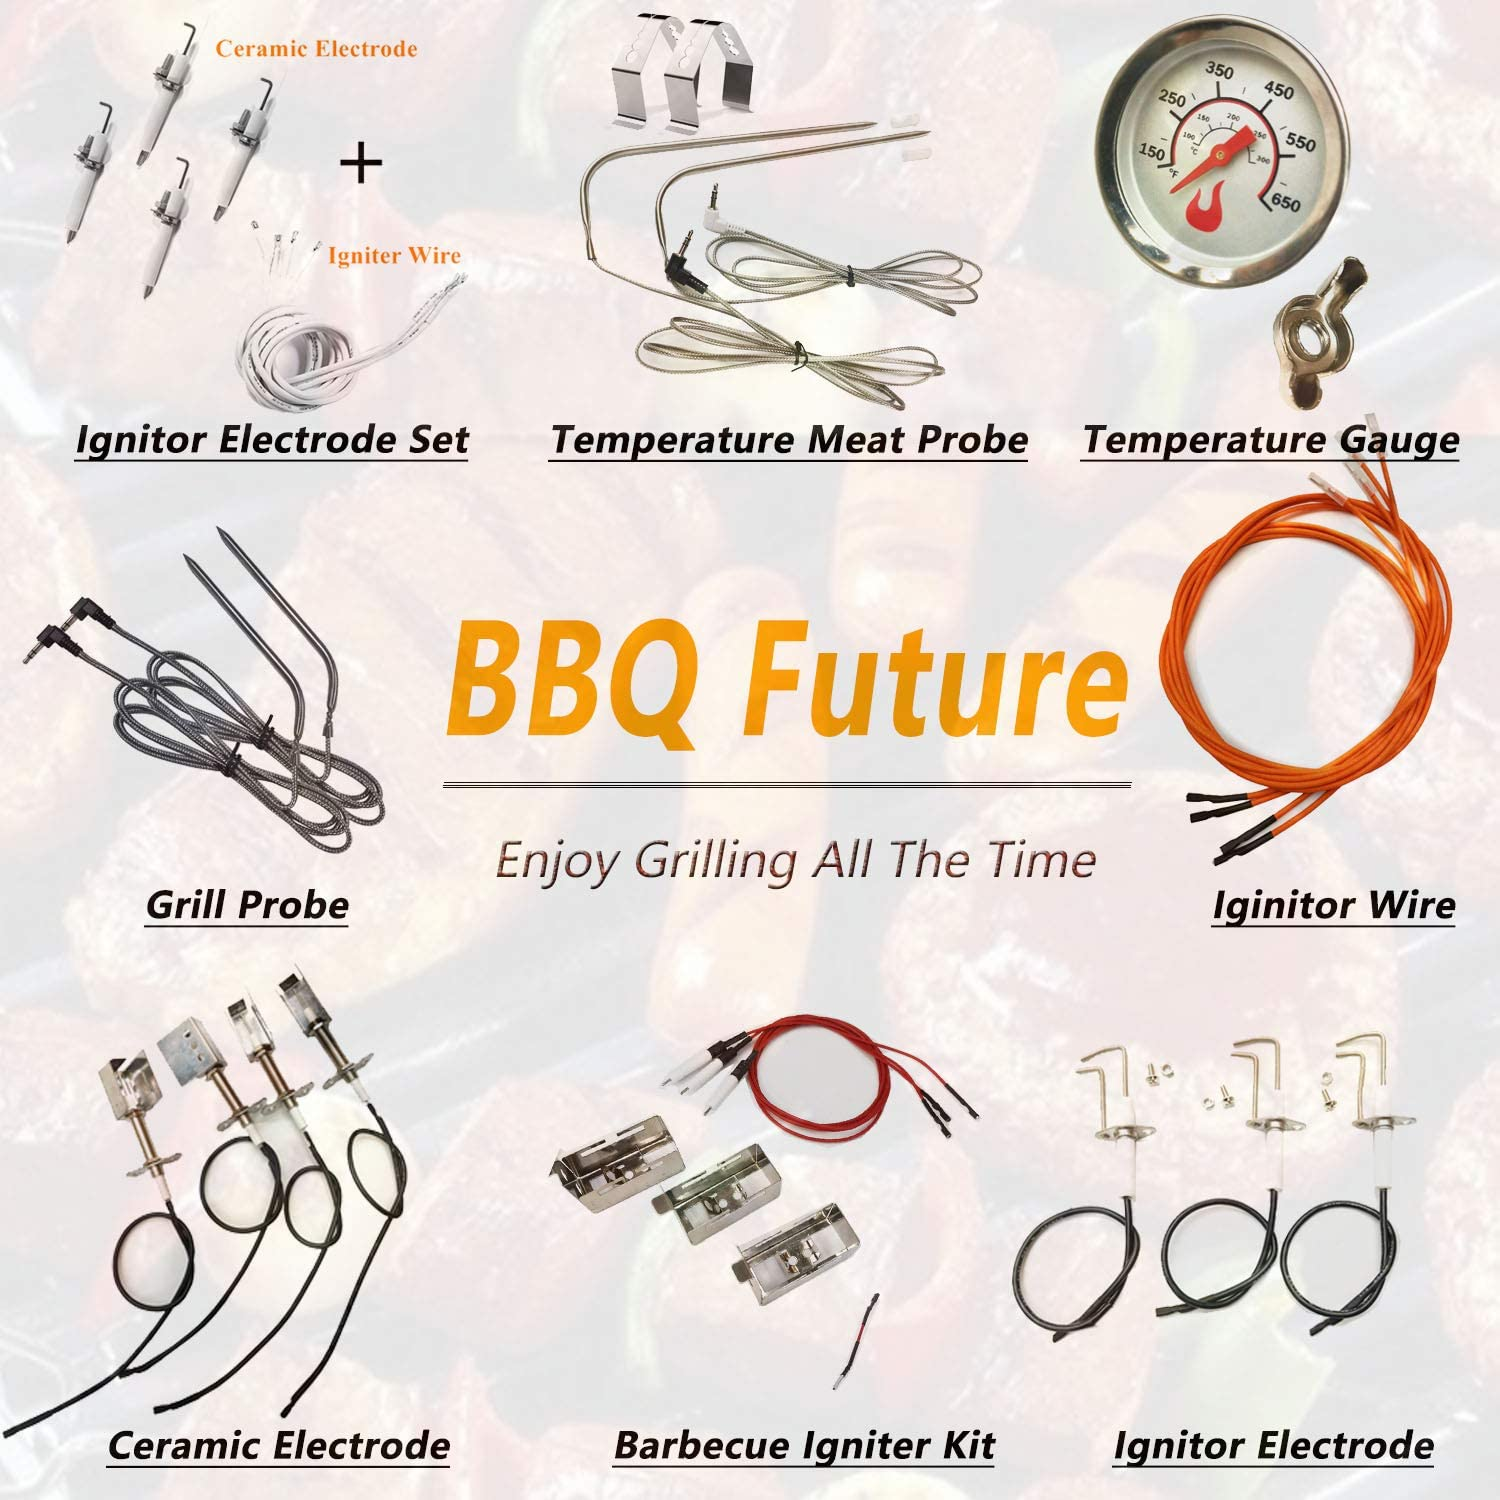 BBQ Future 4-Pack Ceramic Ignitor Electrode Replacement for Select Gas Grill Models by Kenmore Nexgrill Tera Gear and Others Members Mark